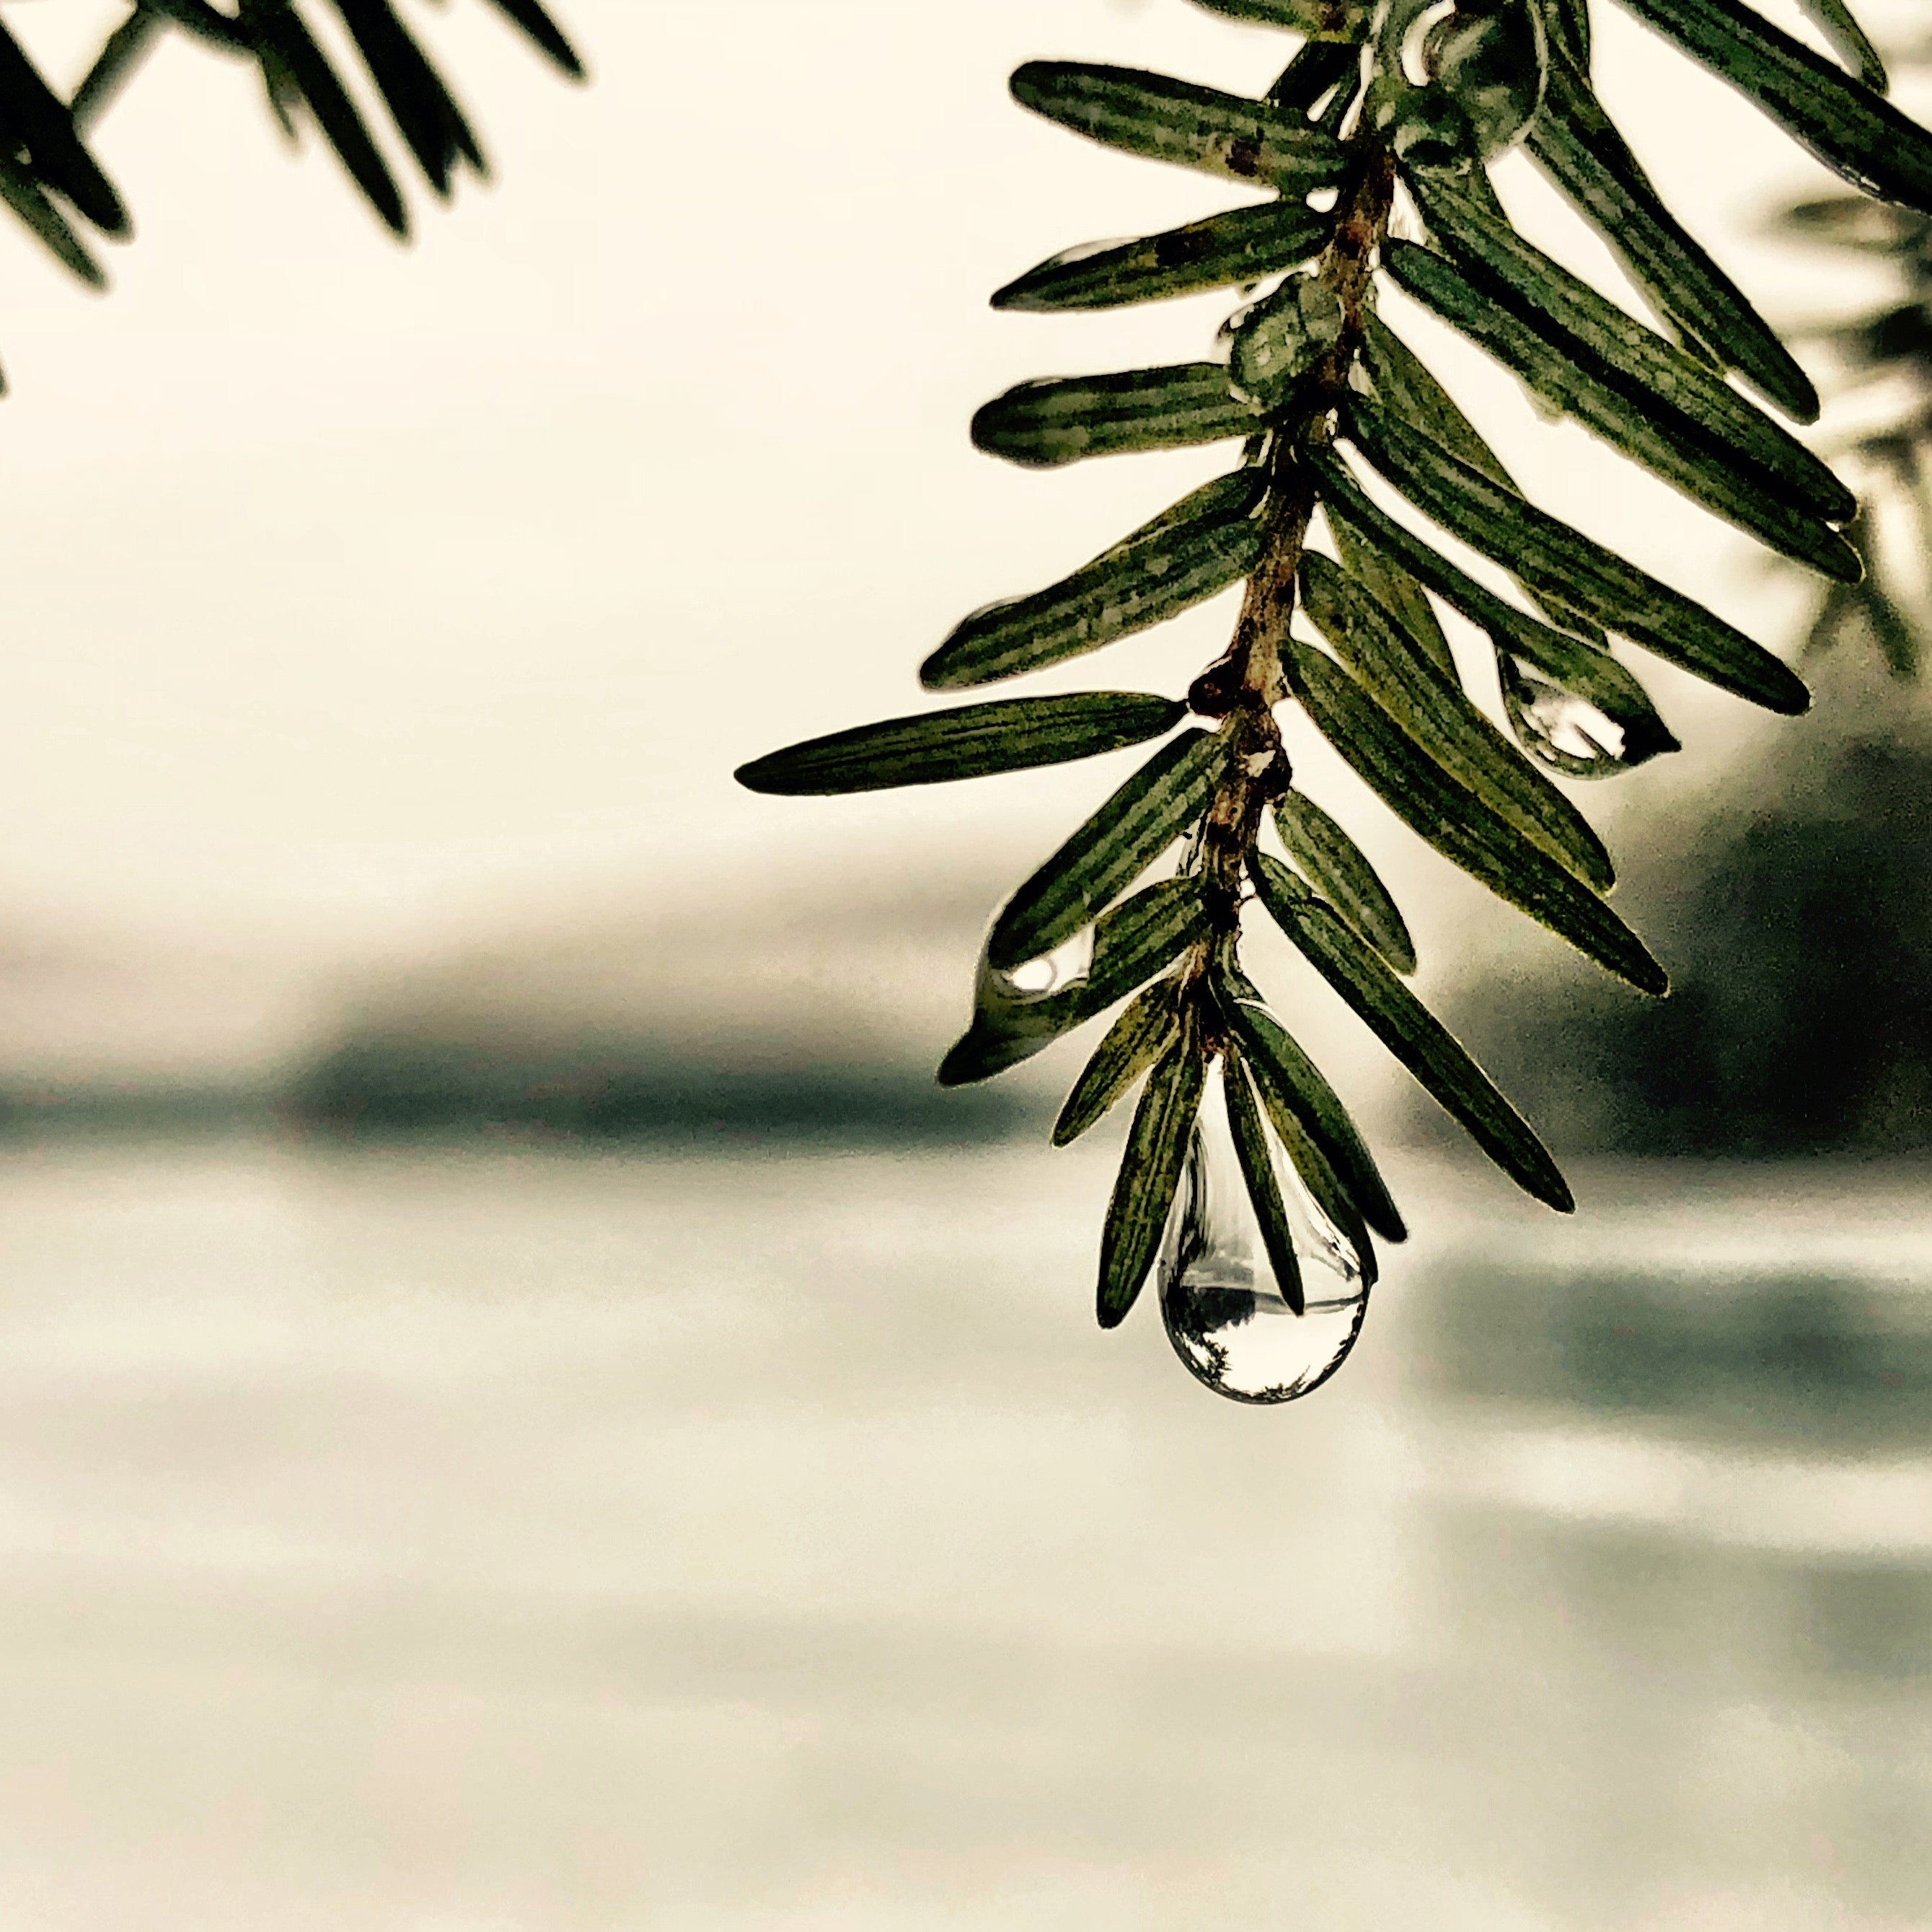 Close-up macro photo of a drop of water on a pine tree branch with a lake in the background